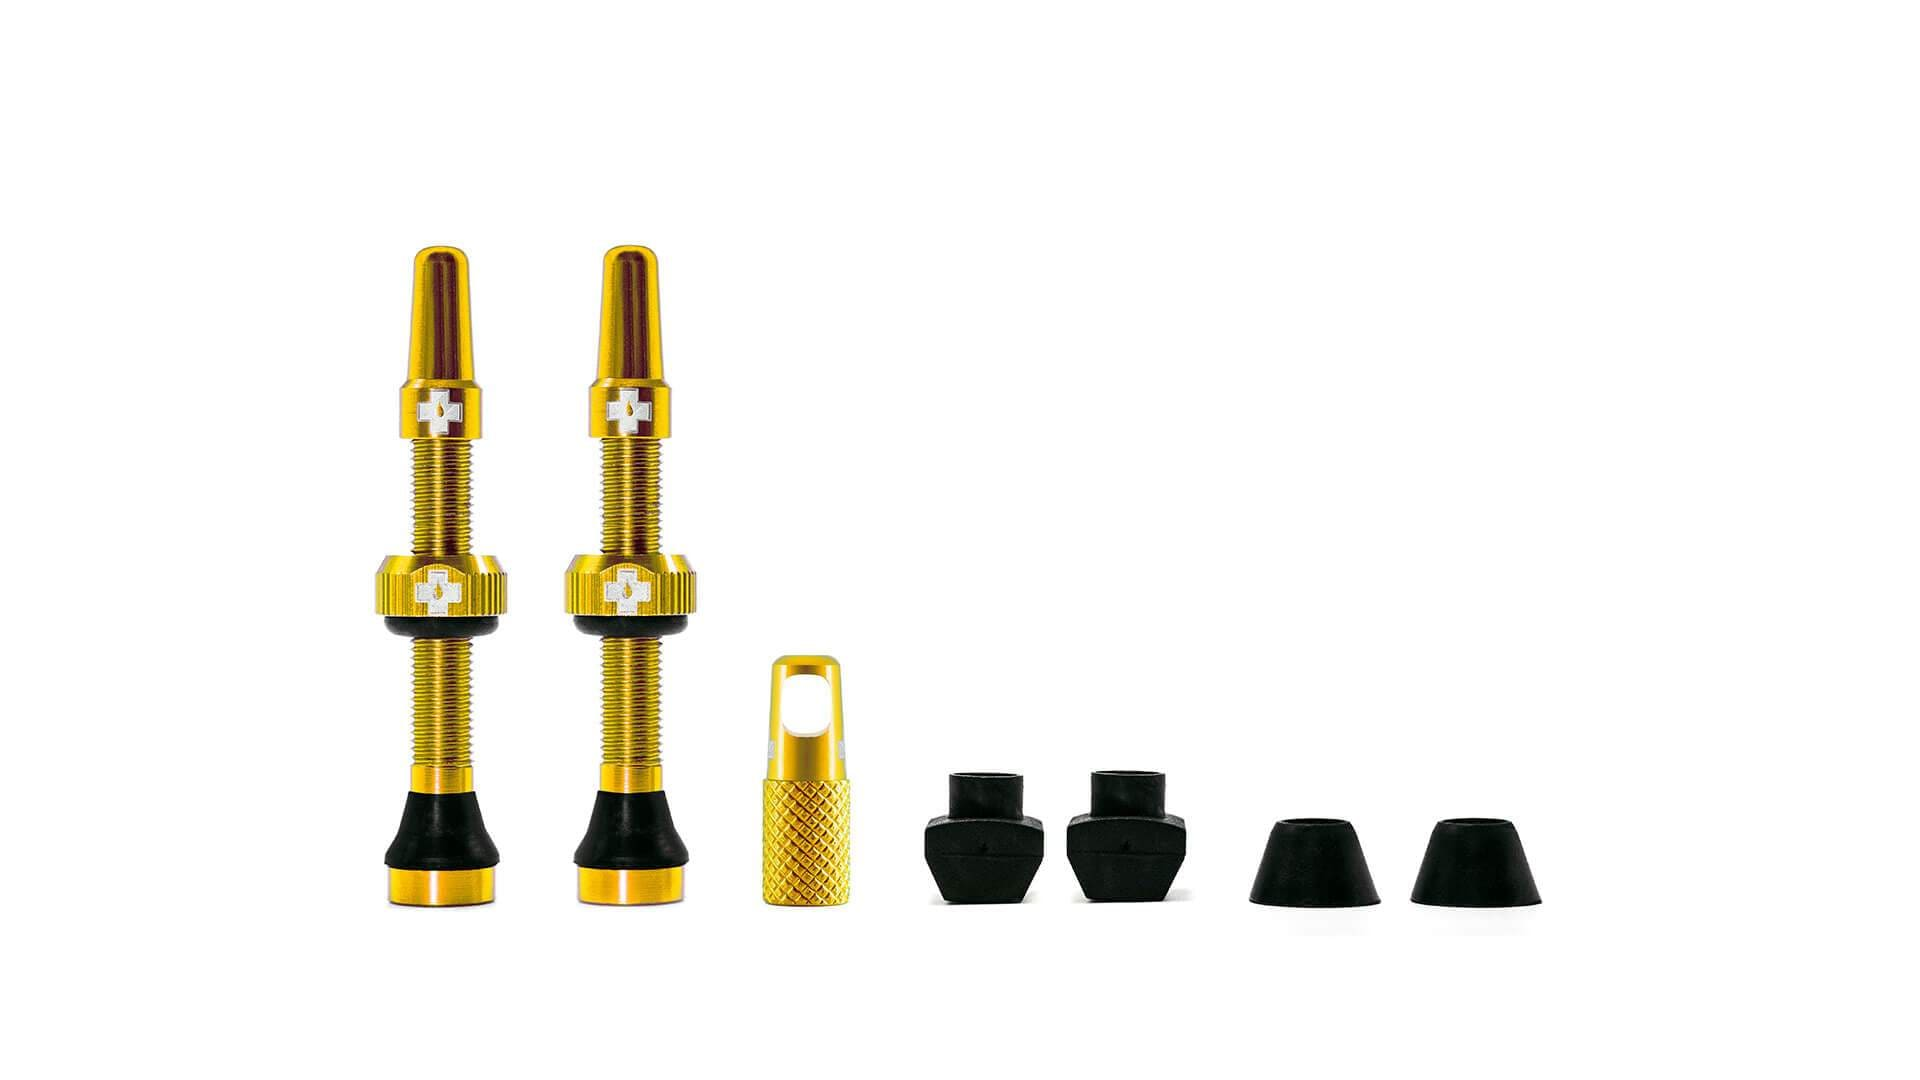 Muc-Off Ventil, Tubeless Valve Kit, Gold